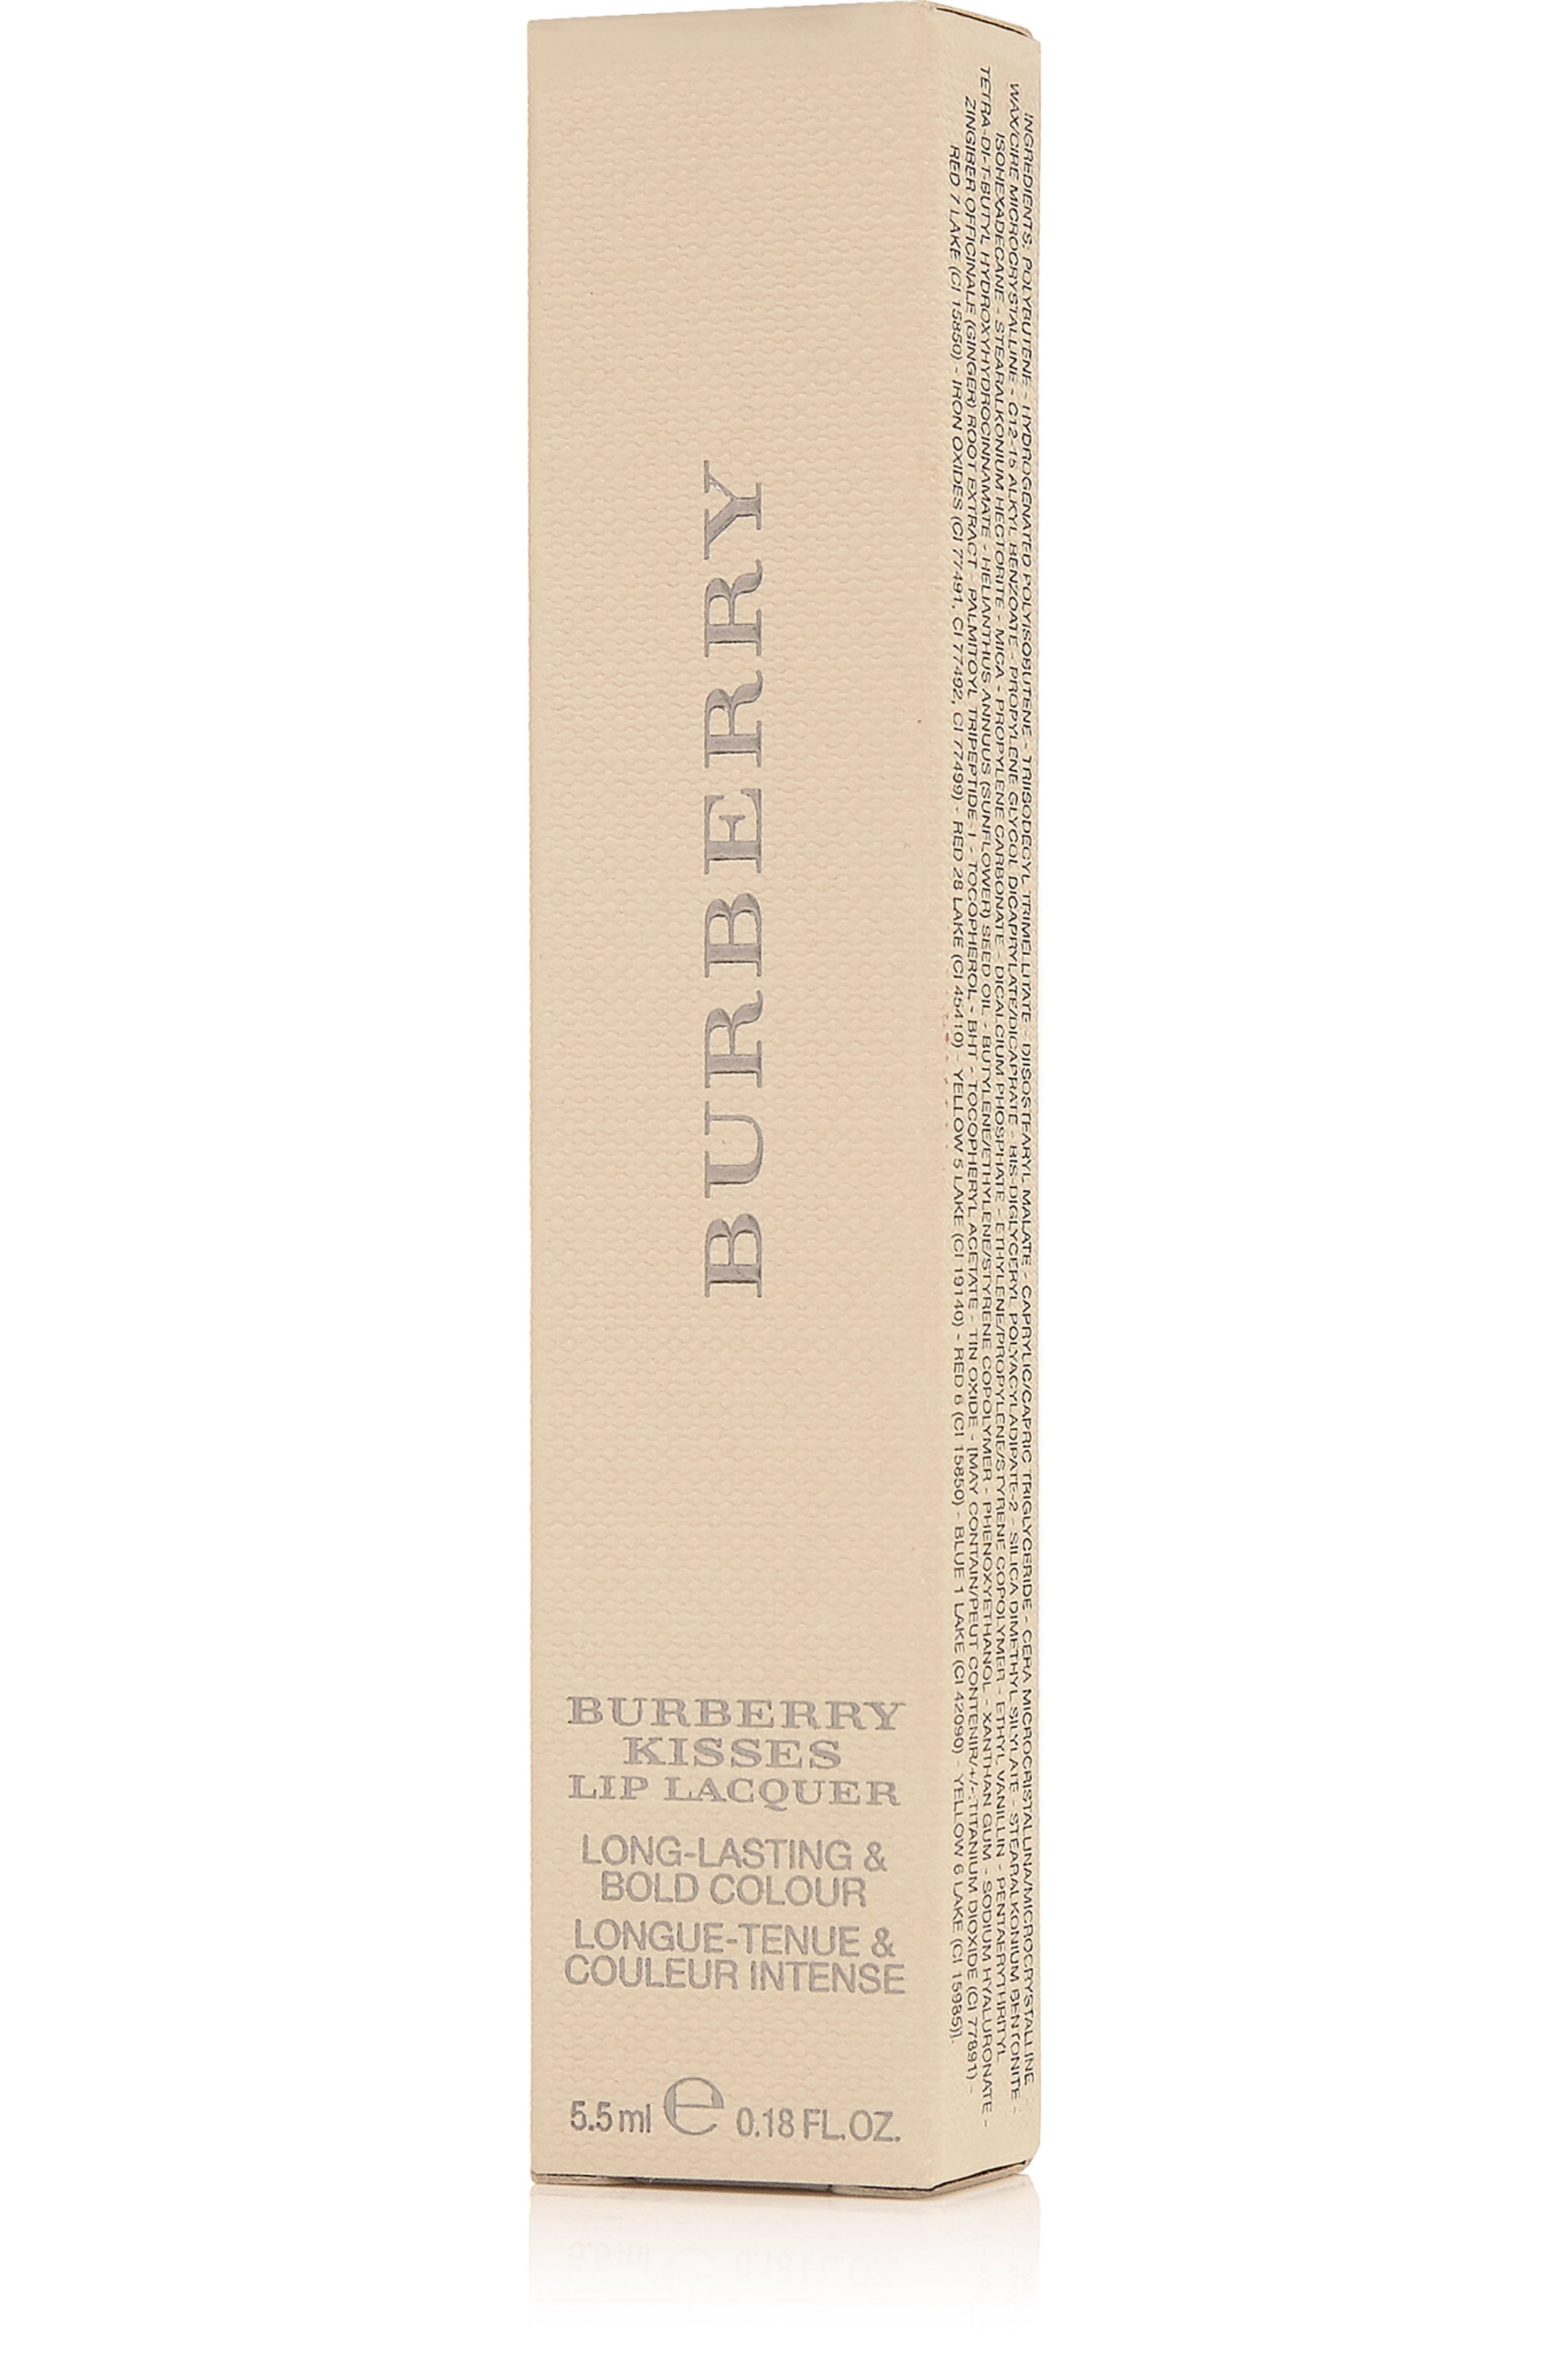 Burberry Beauty Burberry Kisses Lip Lacquer - Tangerine Red No.35